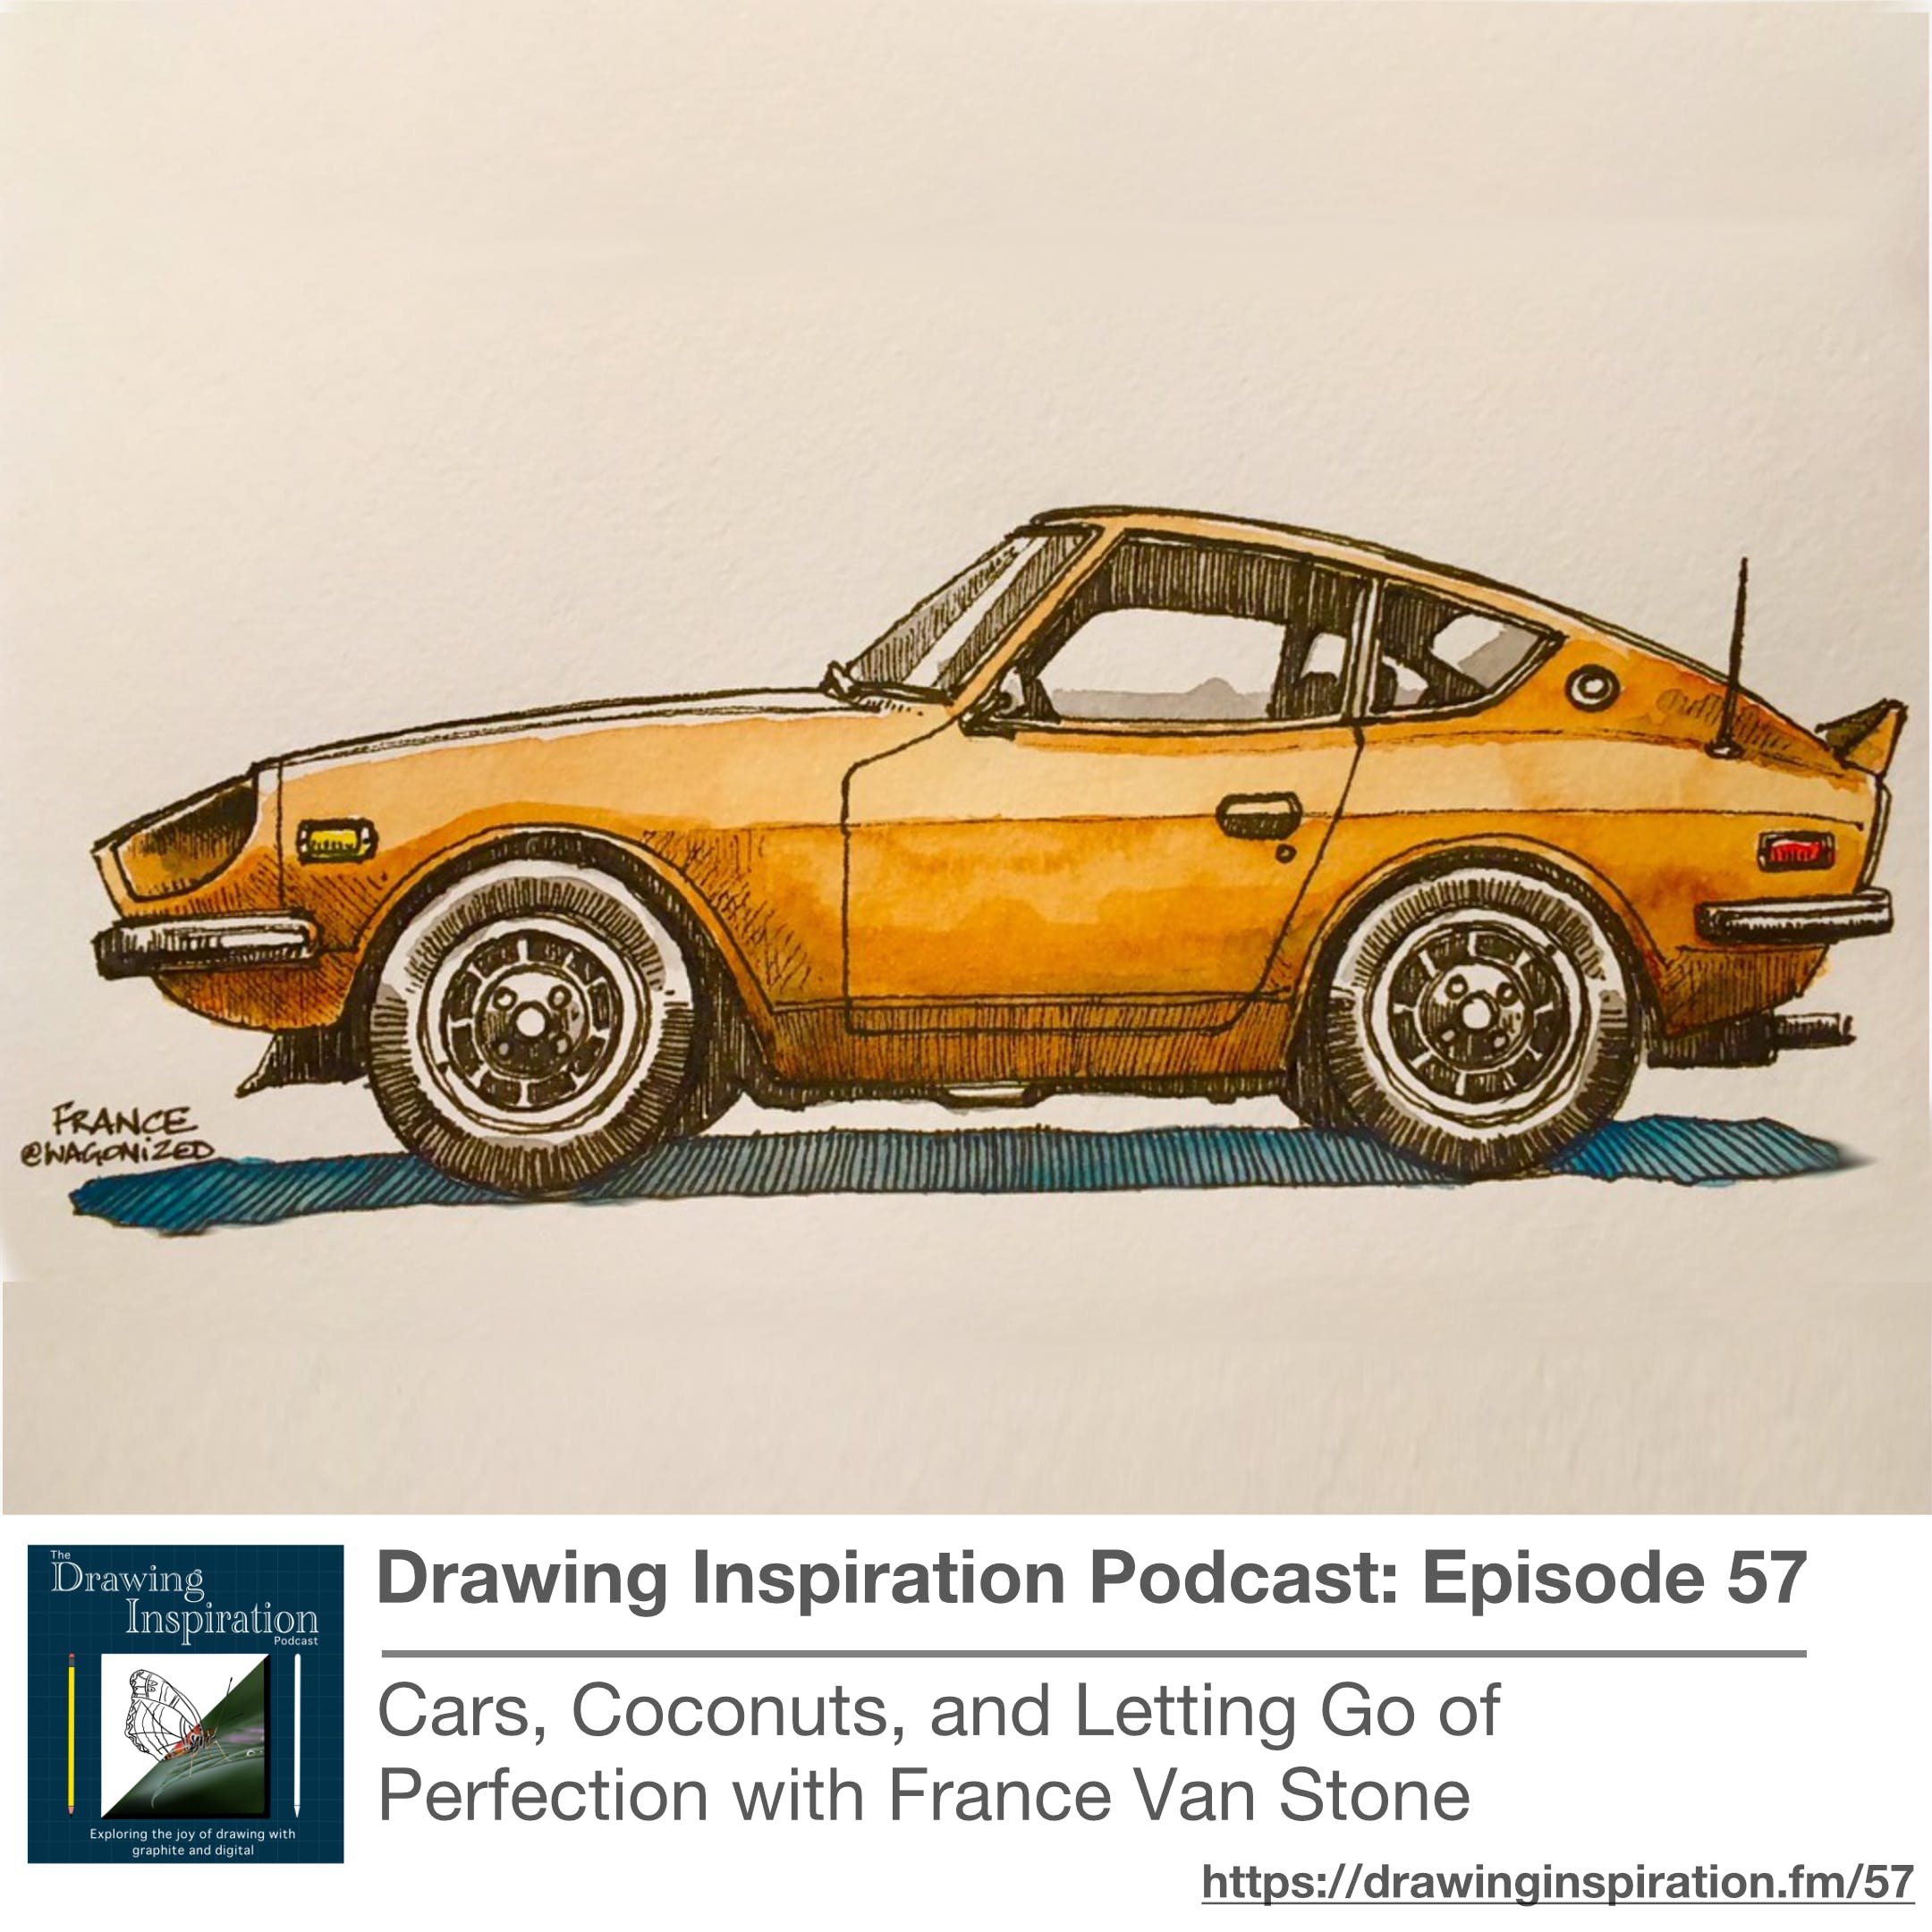 Cars, Coconuts, and Letting Go of Perfection with France Van Stone